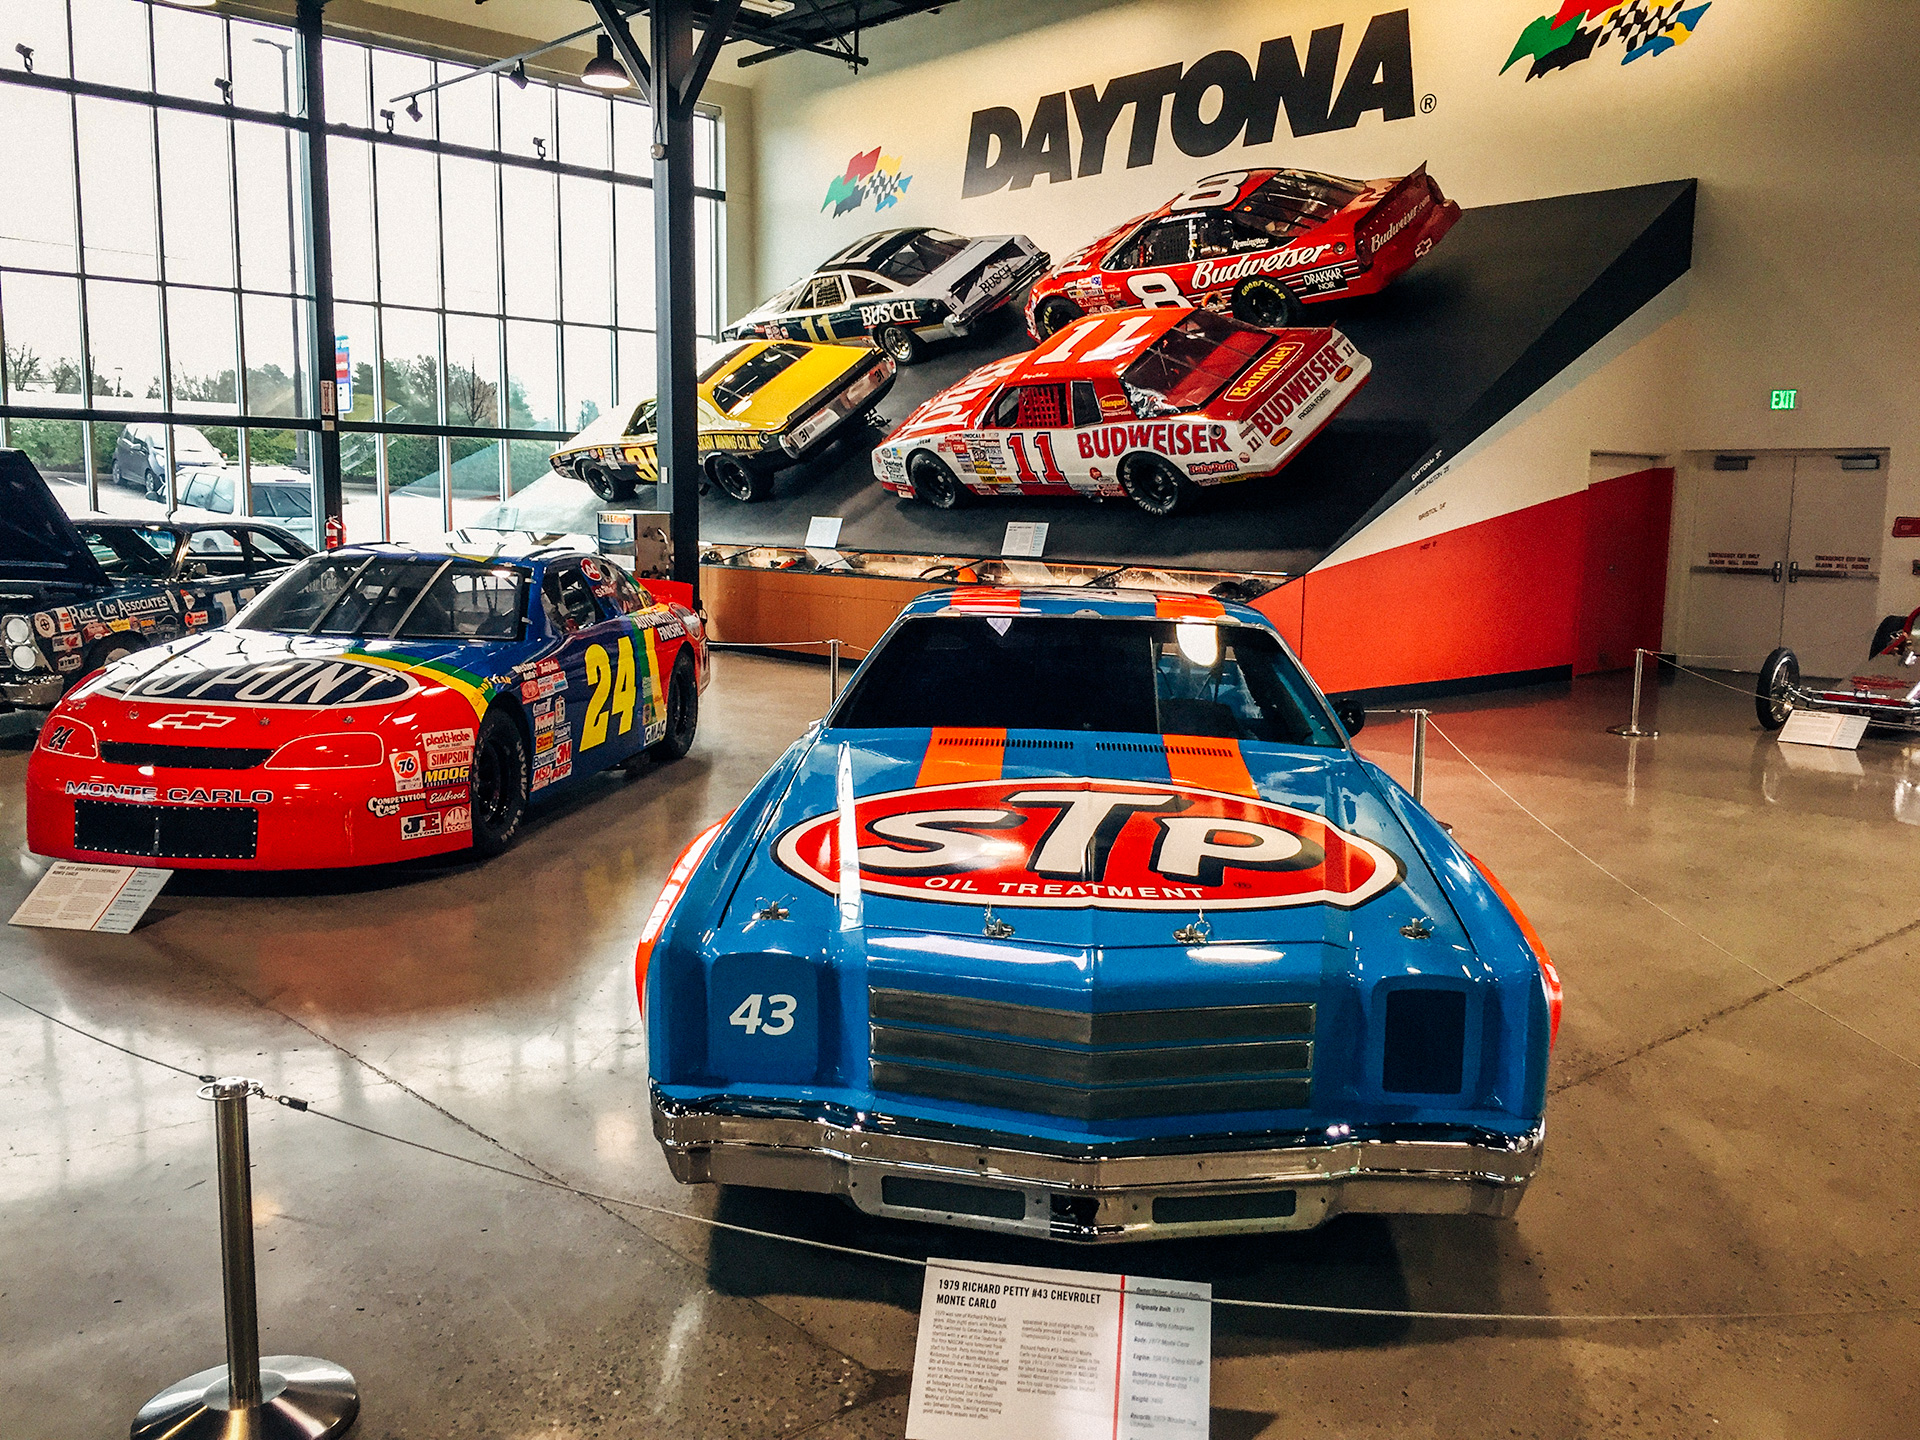 1979 Richard Petty #43 Chevrolet Monte Carlo with a life size replica of the 31-degree Daytona banking complete with four real NASCARs behind it at the World of Speed Museum